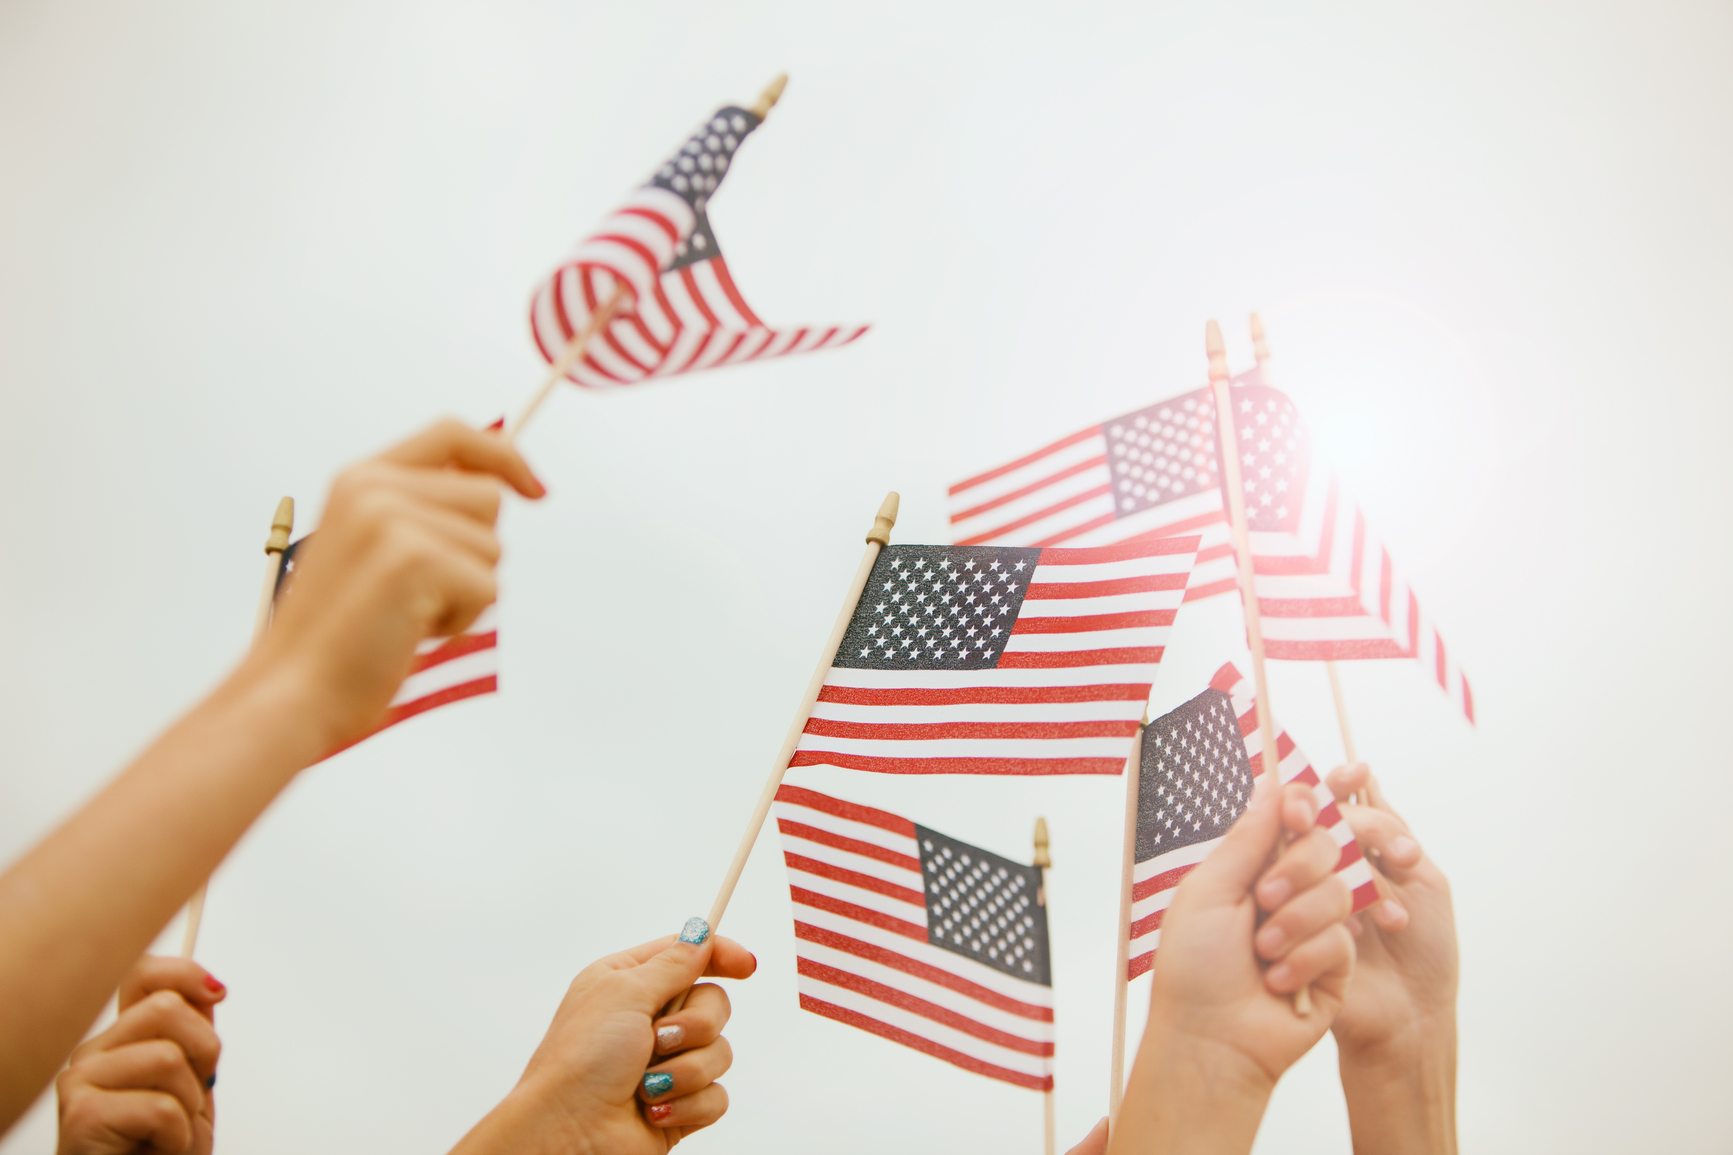 Parade: Hands Waving American Flags In Sky